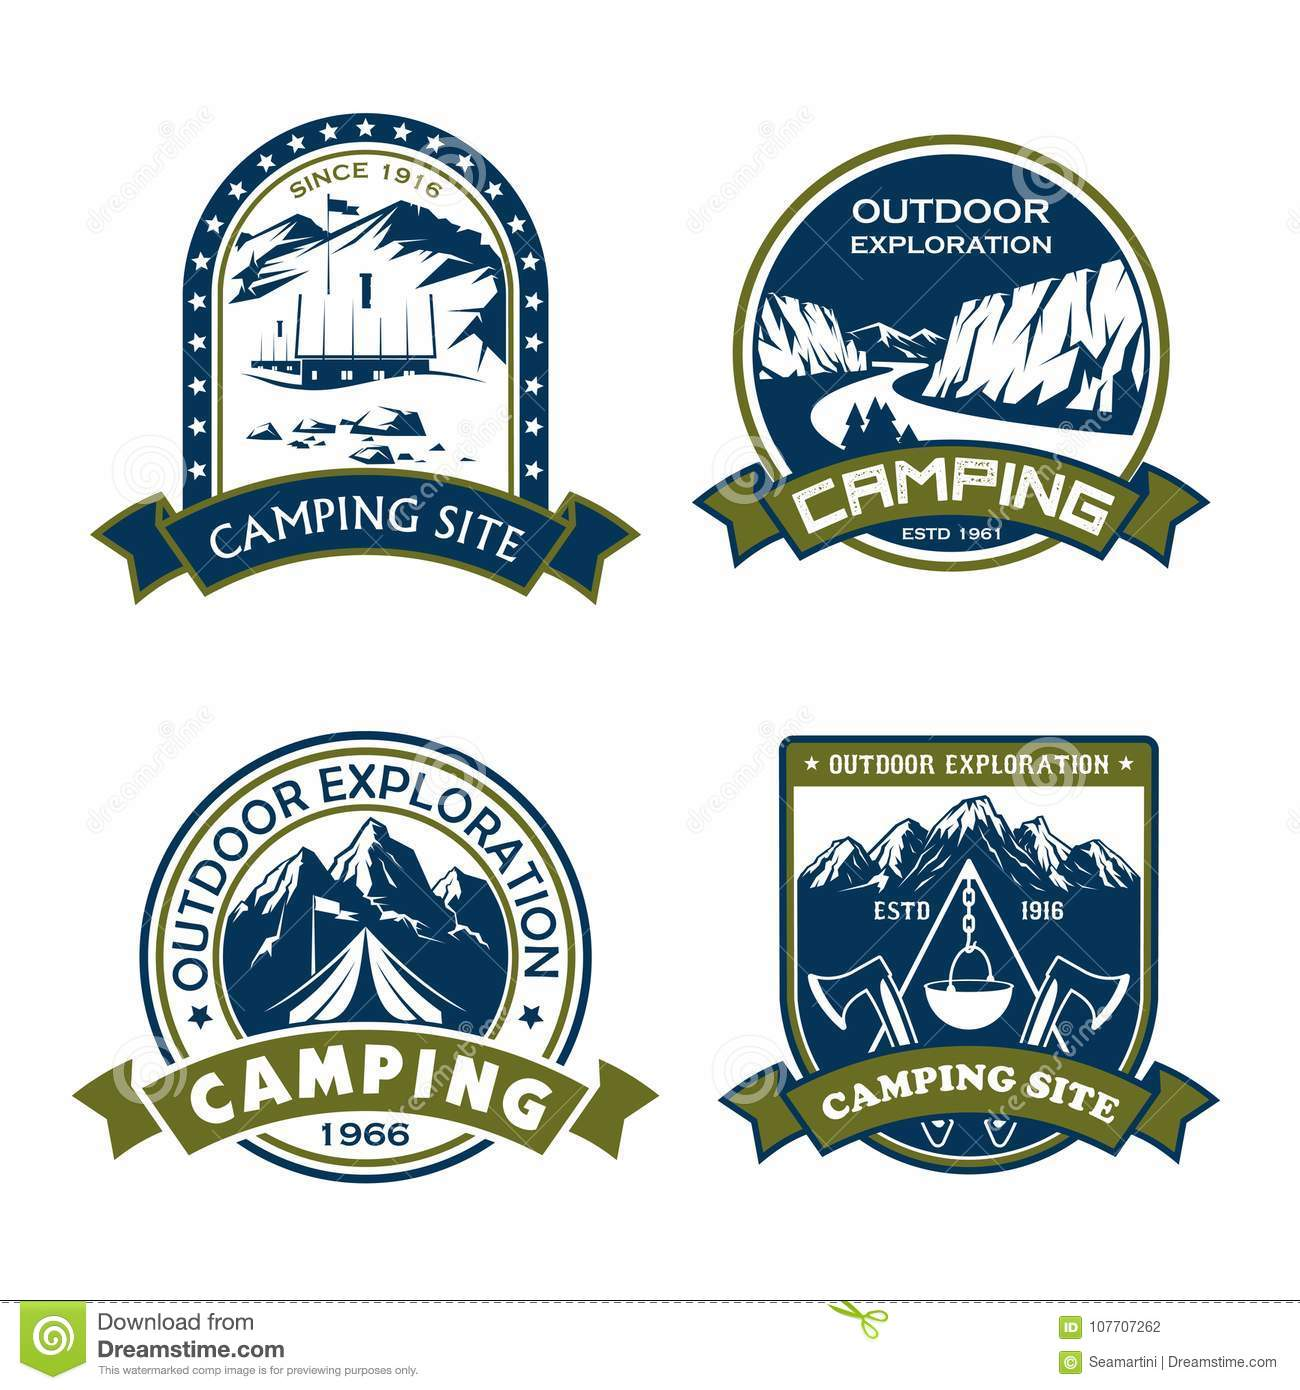 Vector icons for camping site outdoor adventure